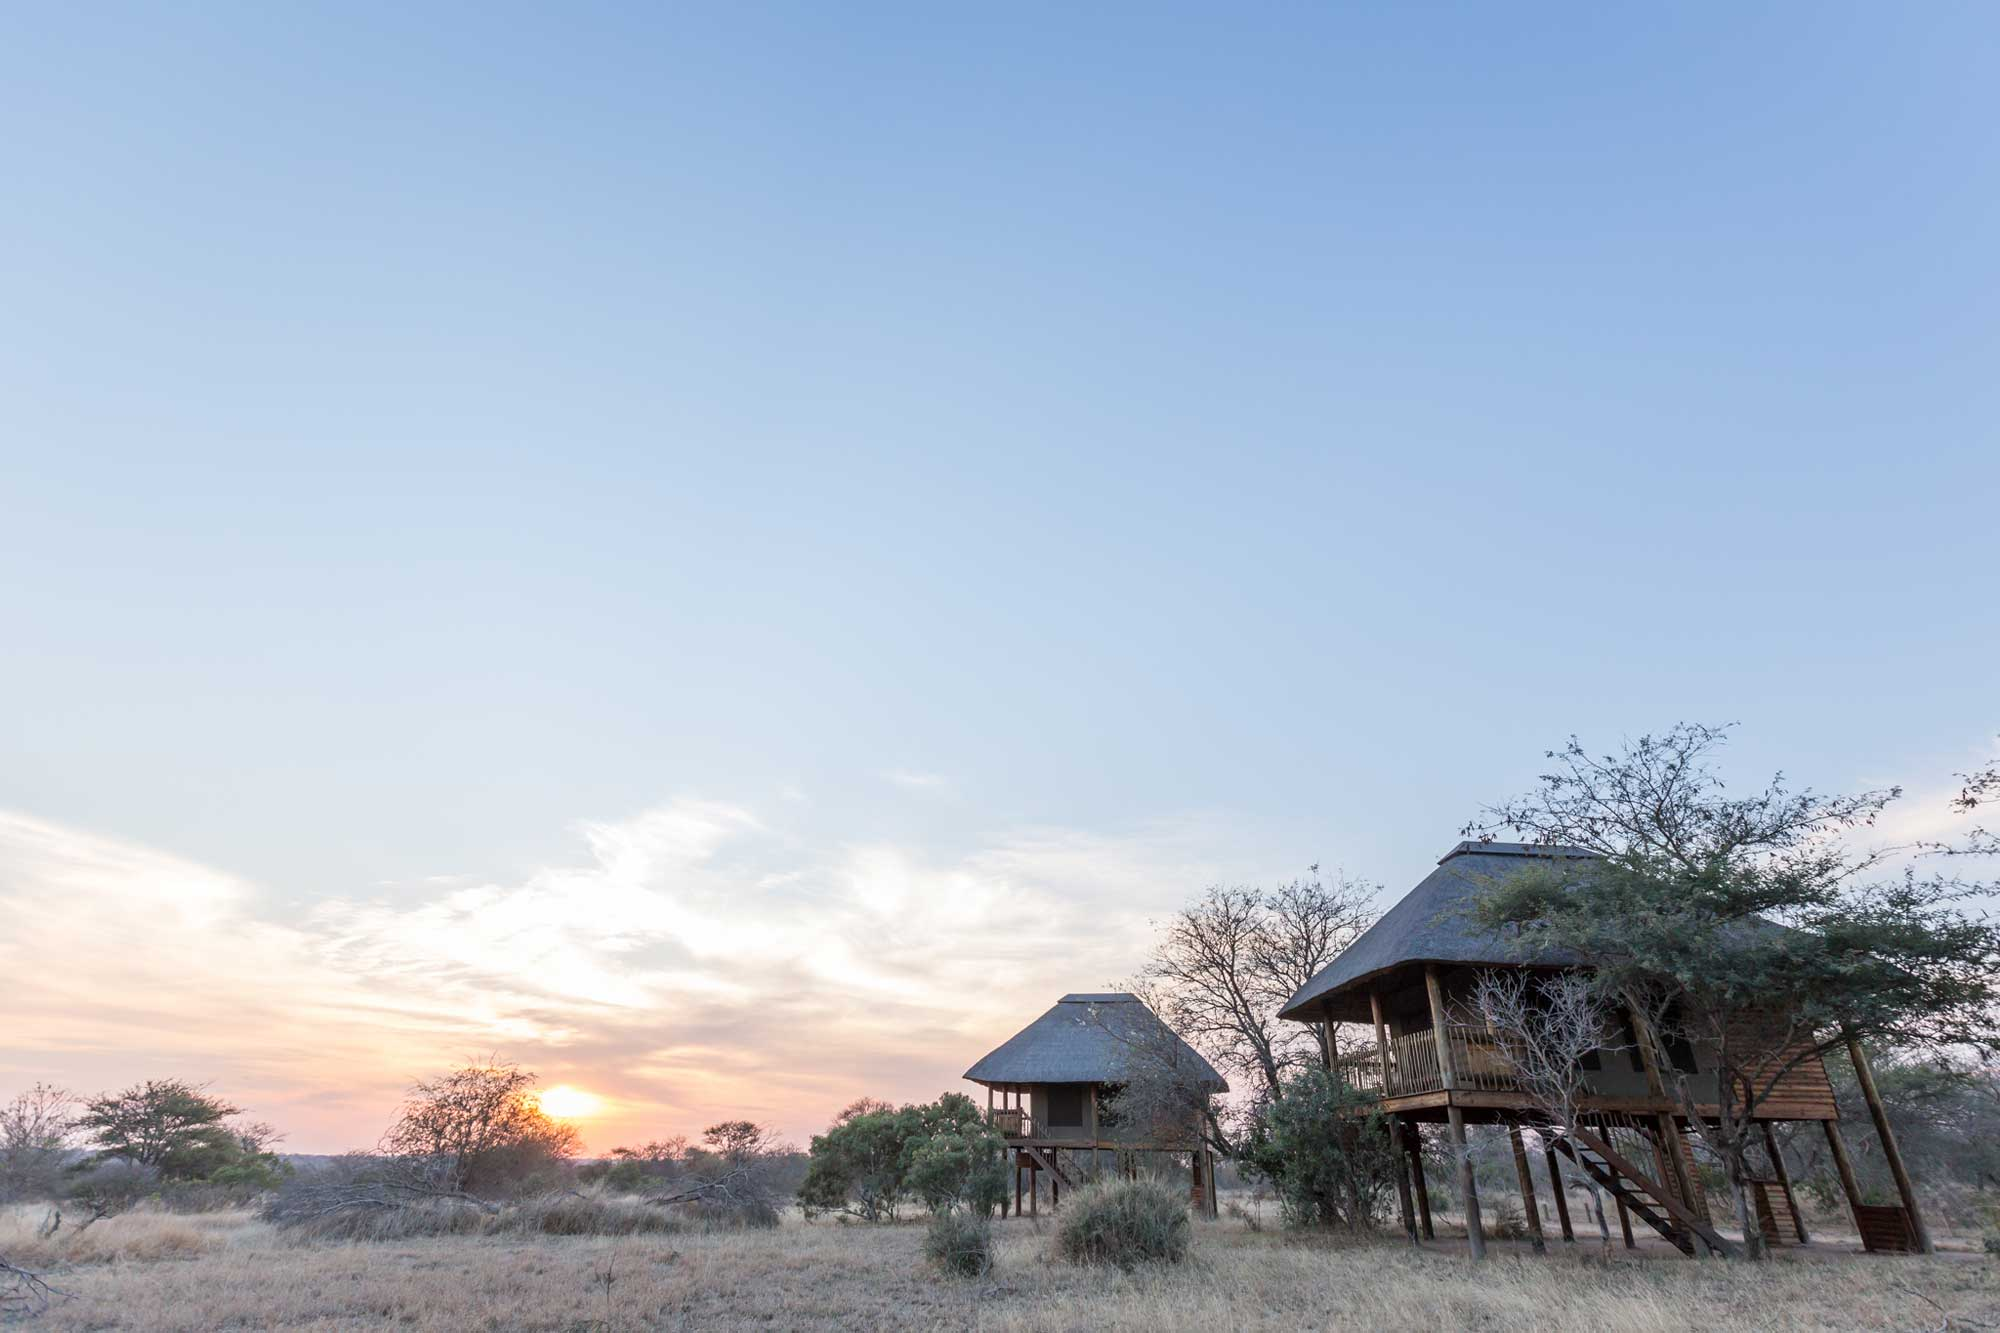 Kruger Safari Lodges, Agent's Choice: 5 Top-rated Kruger Safari Lodges, by Natasha Allan